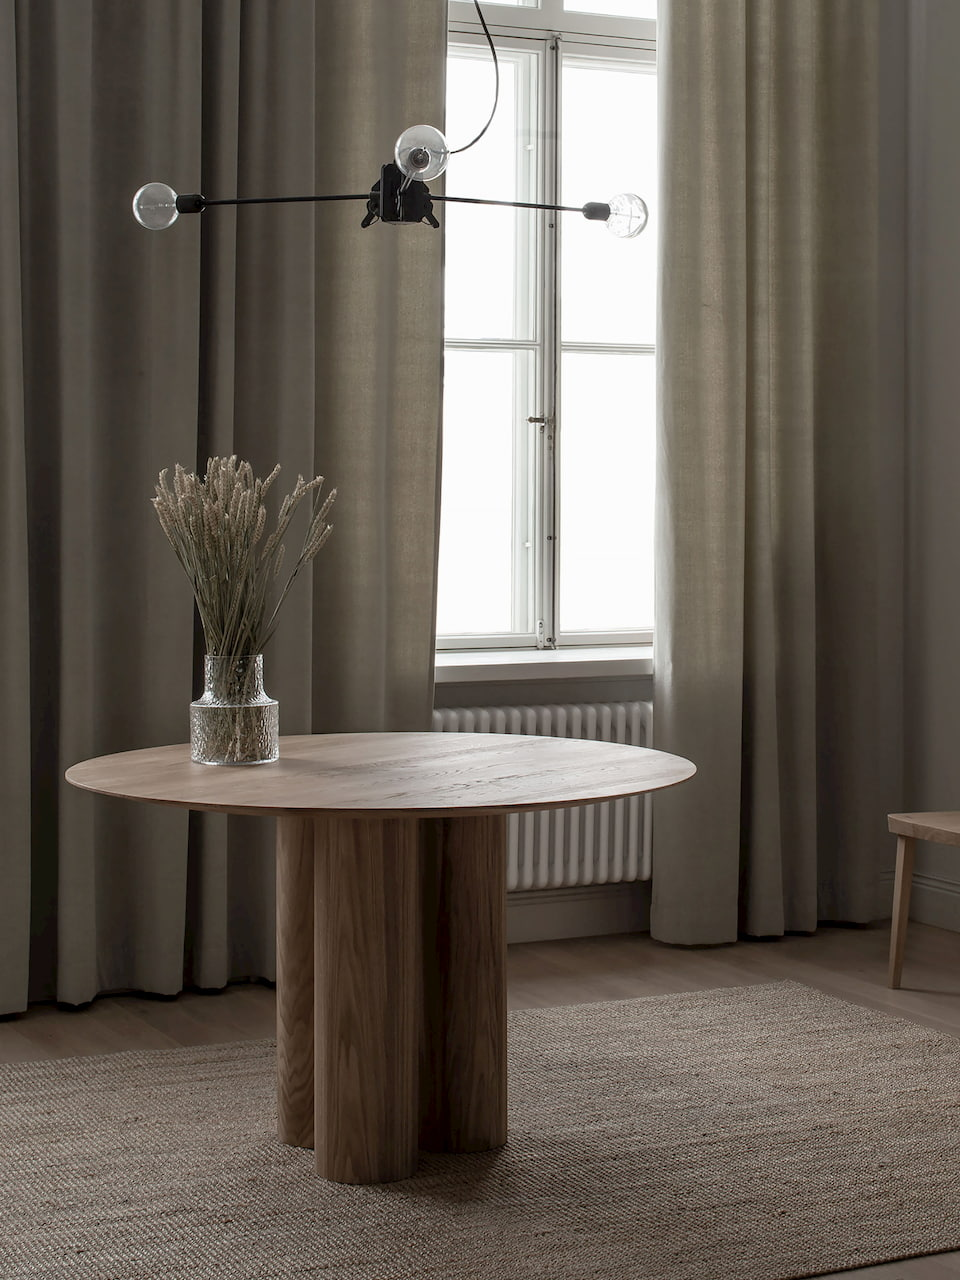 Round Wooden Dining Tables Our Top 8 Picks Aetava